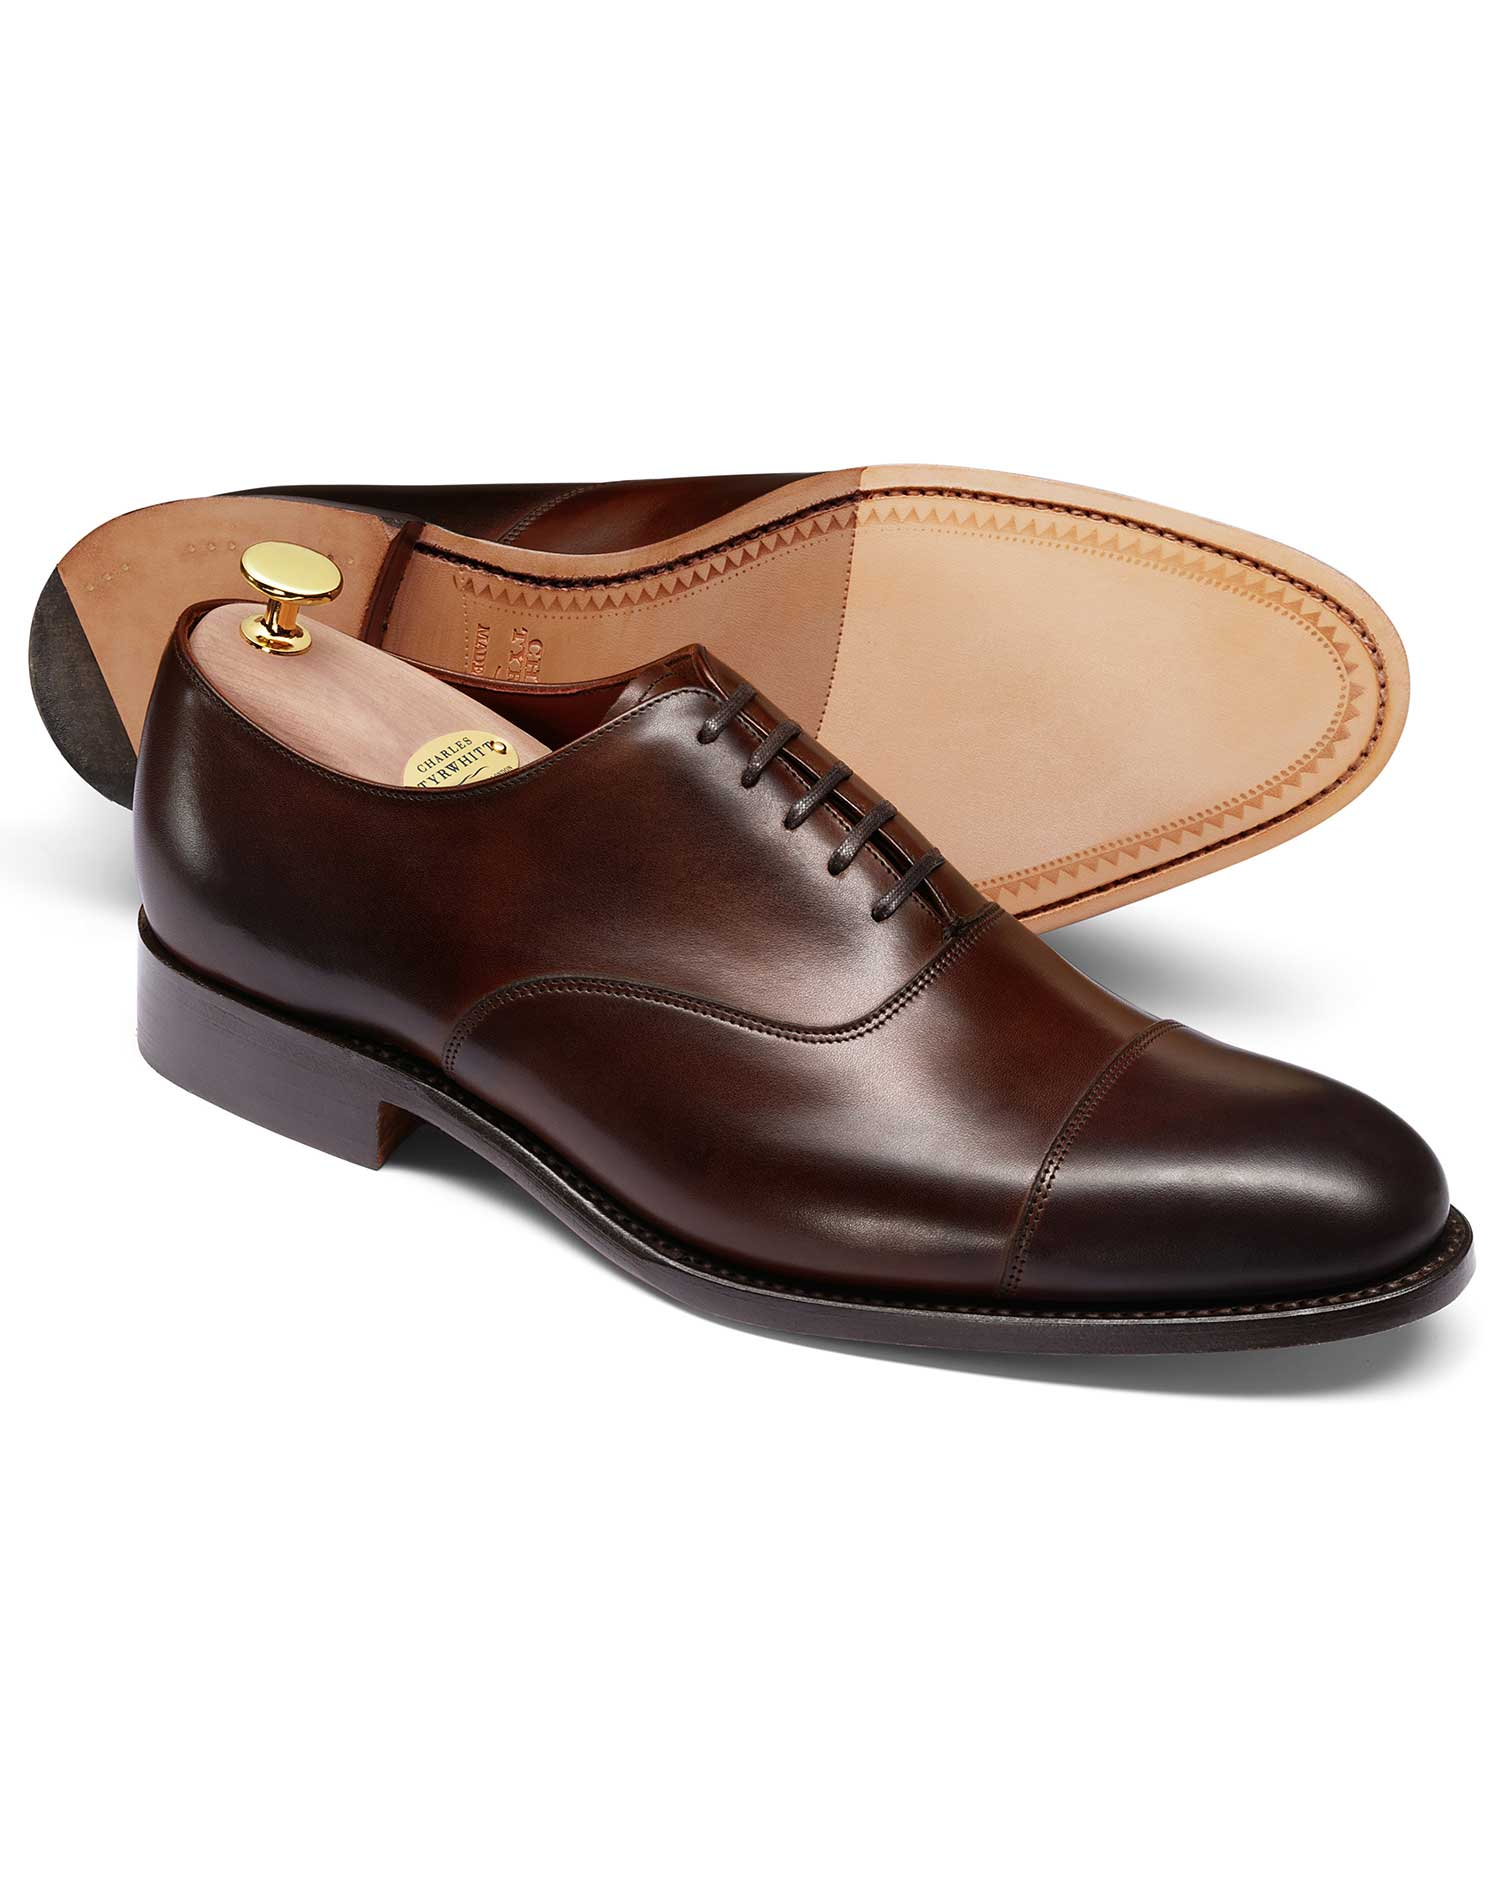 Mahogany Made In England Oxford Shoe Size 8.5 R by Charles Tyrwhitt